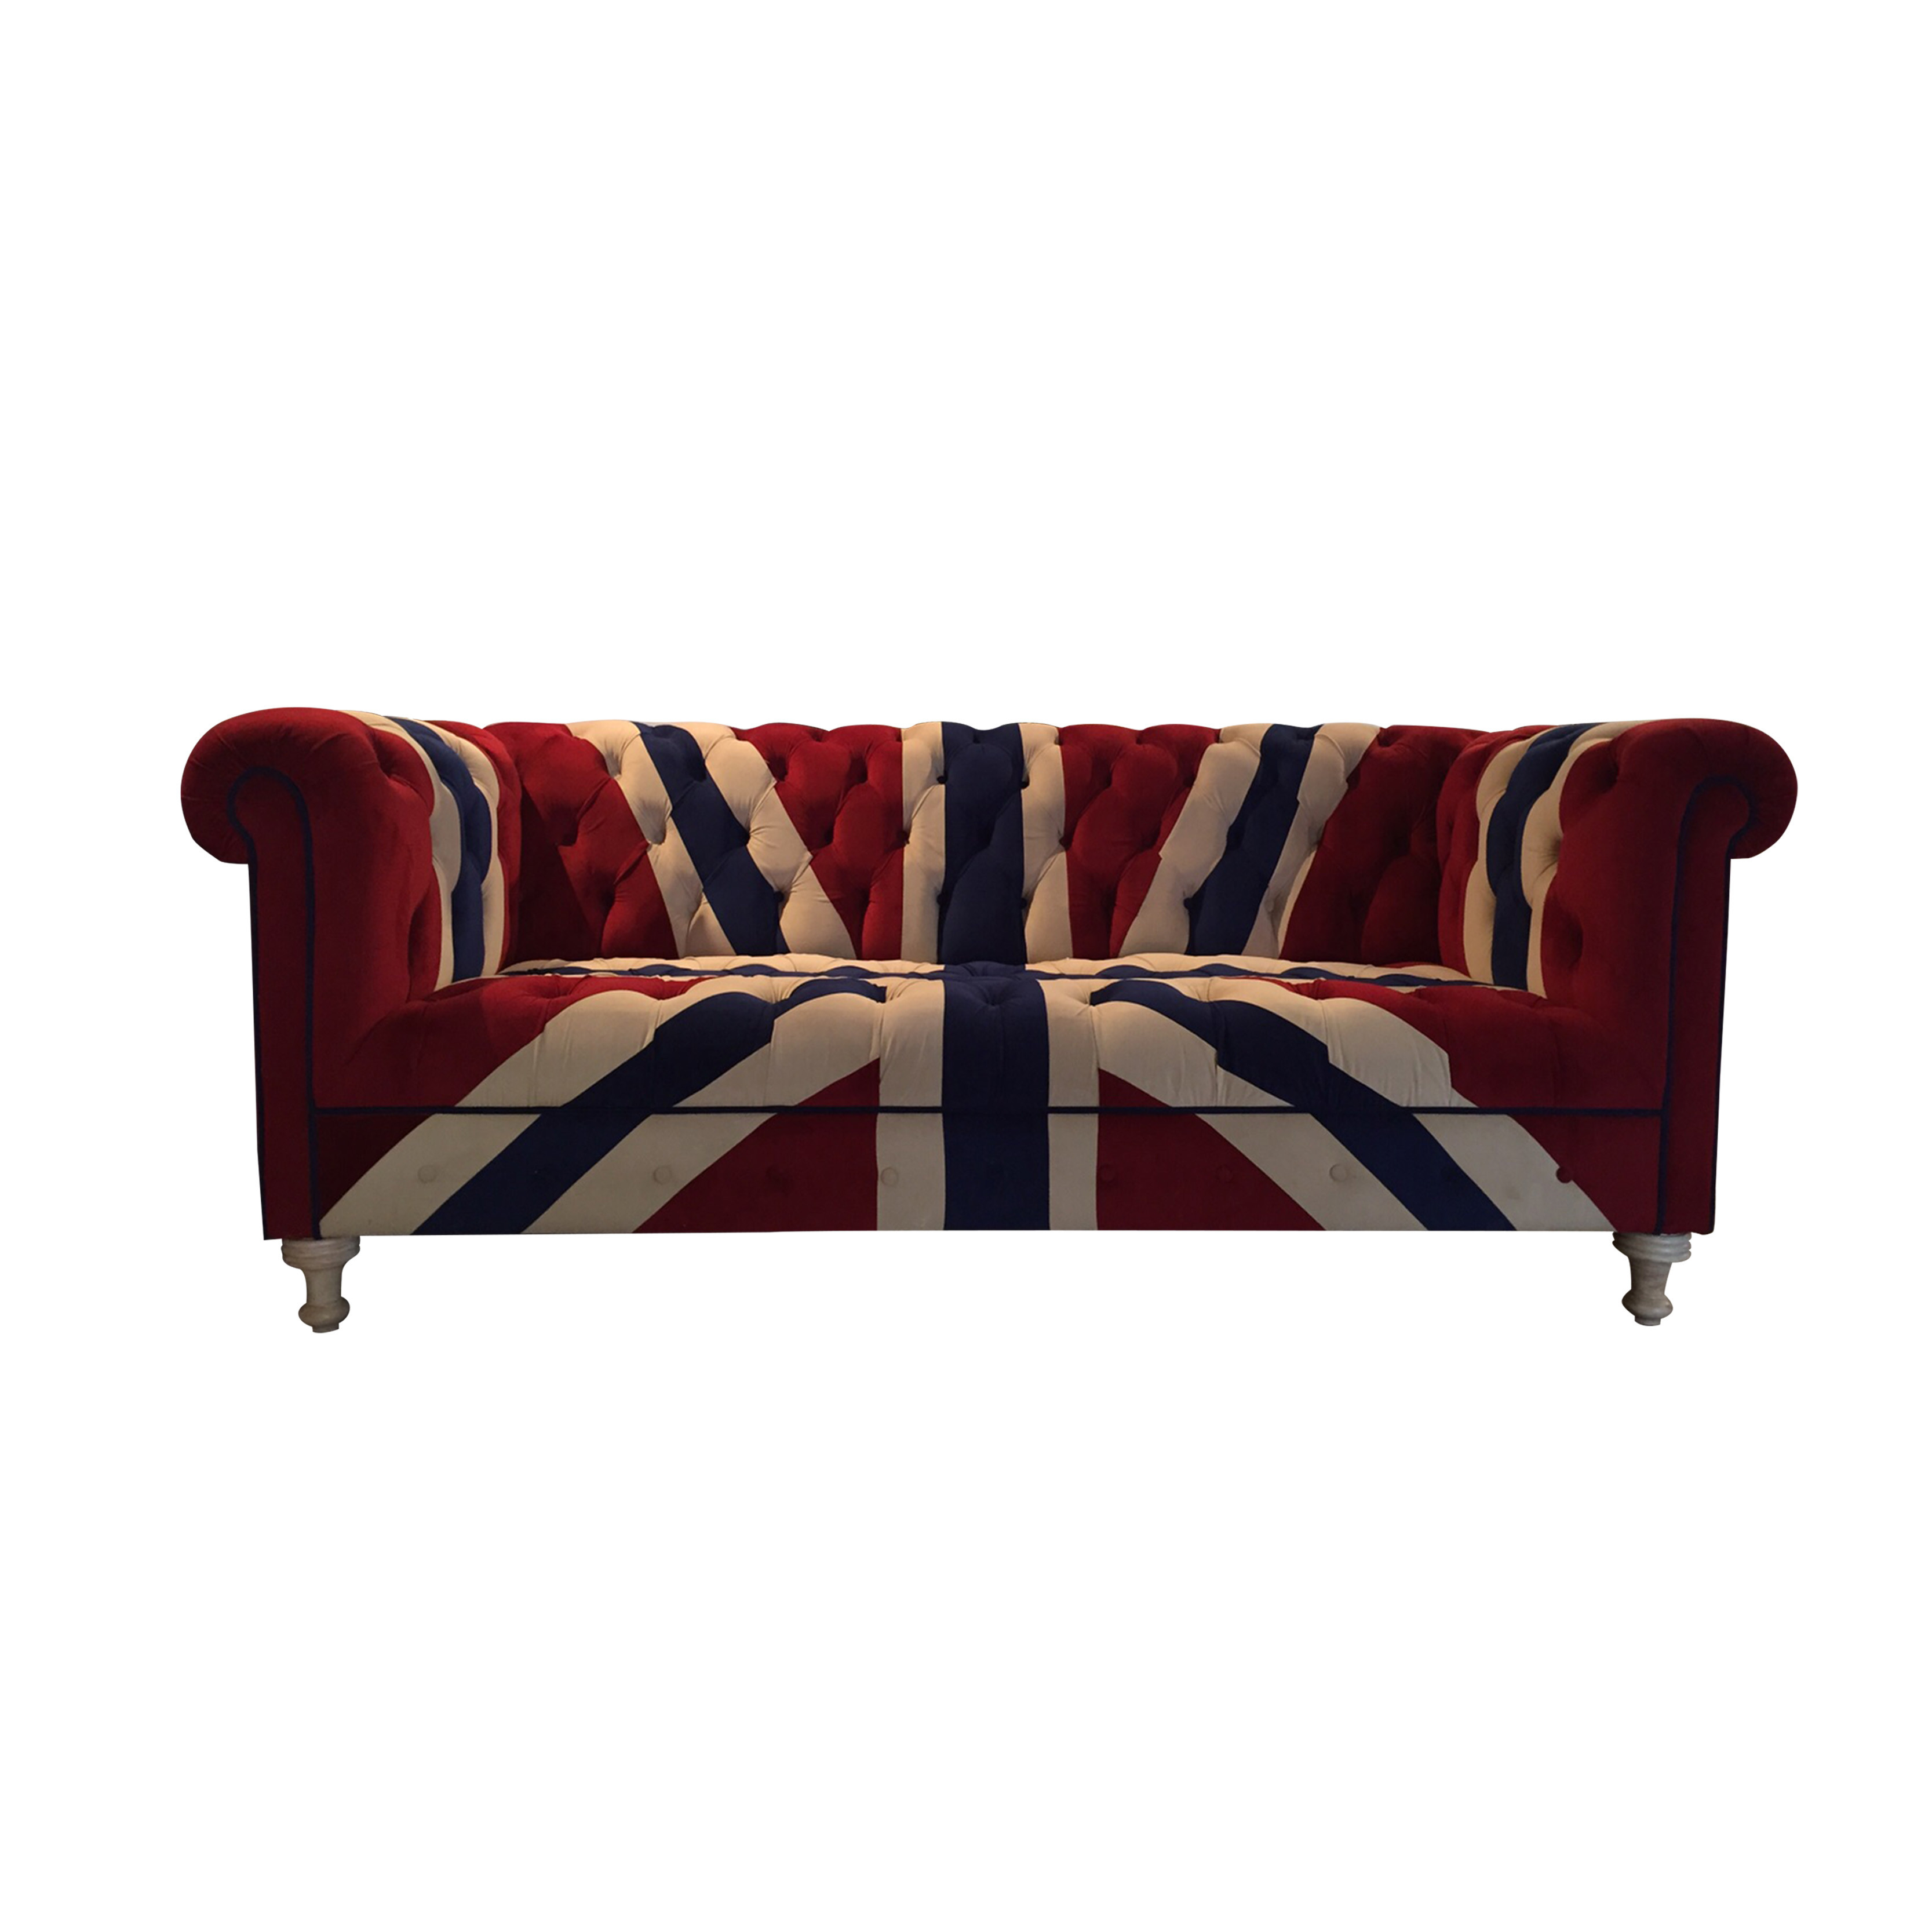 3 Seater Sofa Union Jack Furniture Home Dcor Fortytwo